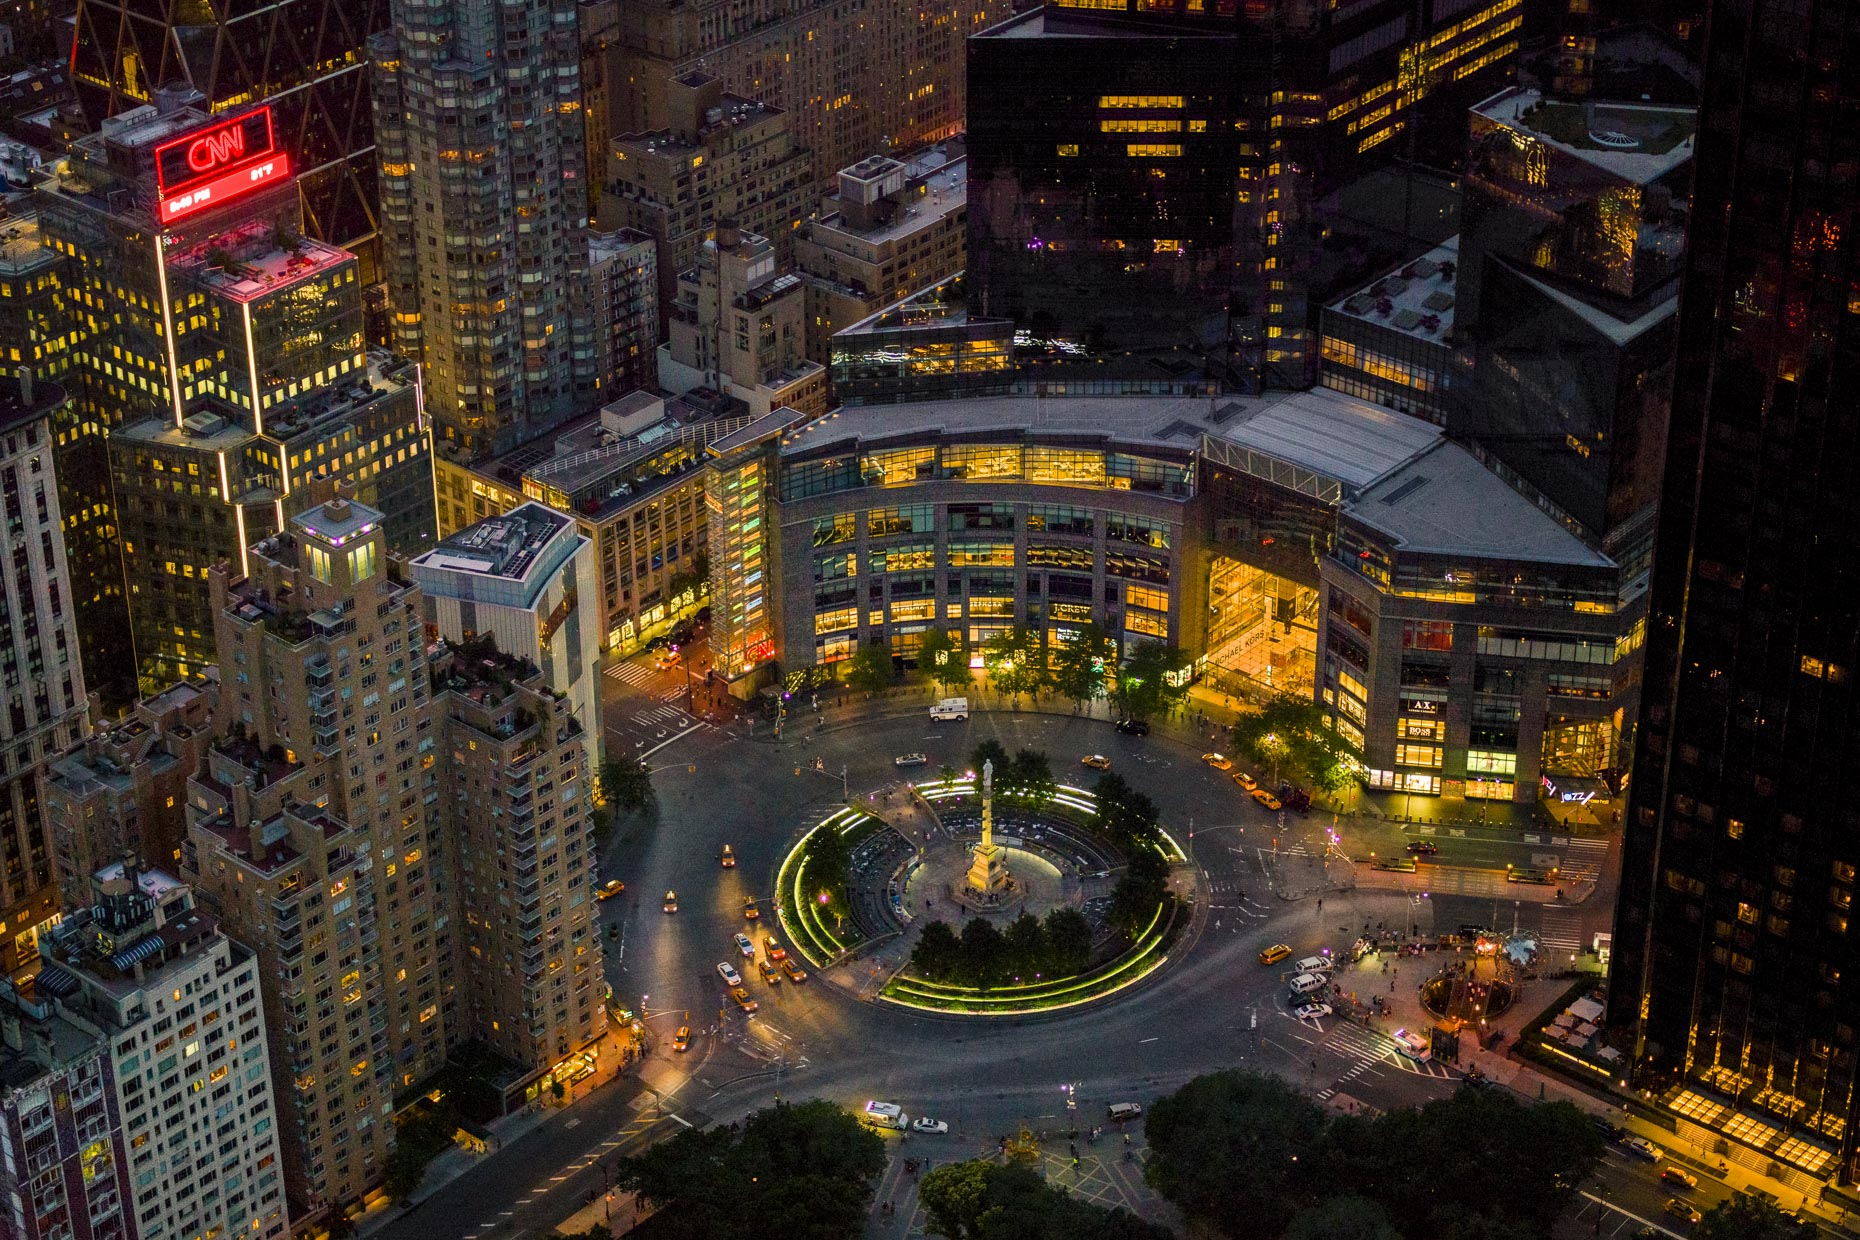 Columbus Circle.  New York City aerial photography by Stefen Turner